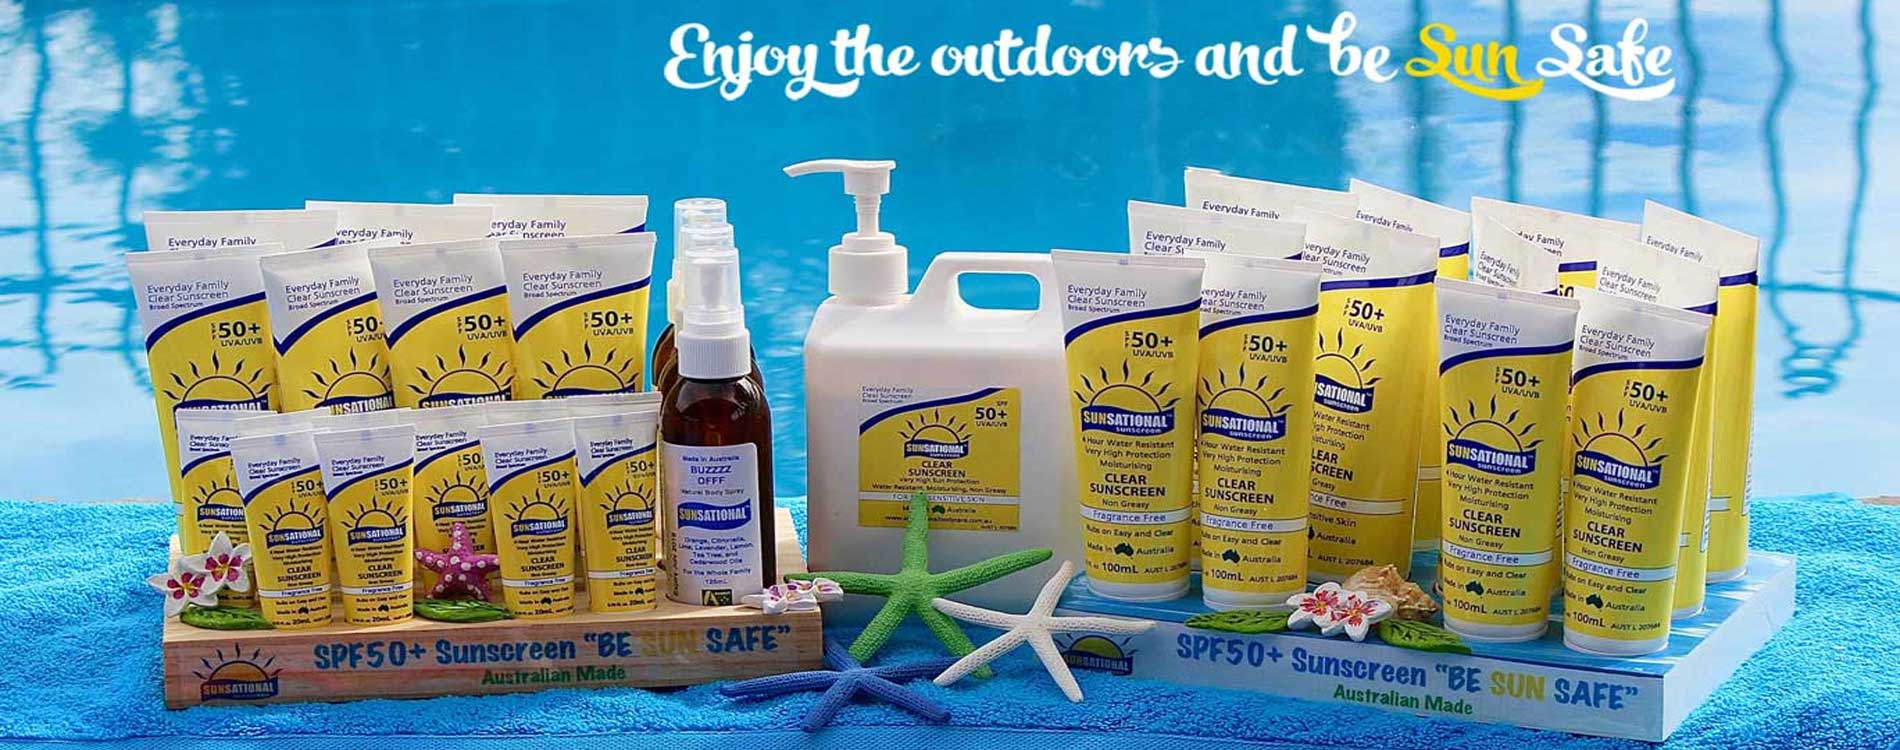 Sunsational Sunscreen and Body Care Products